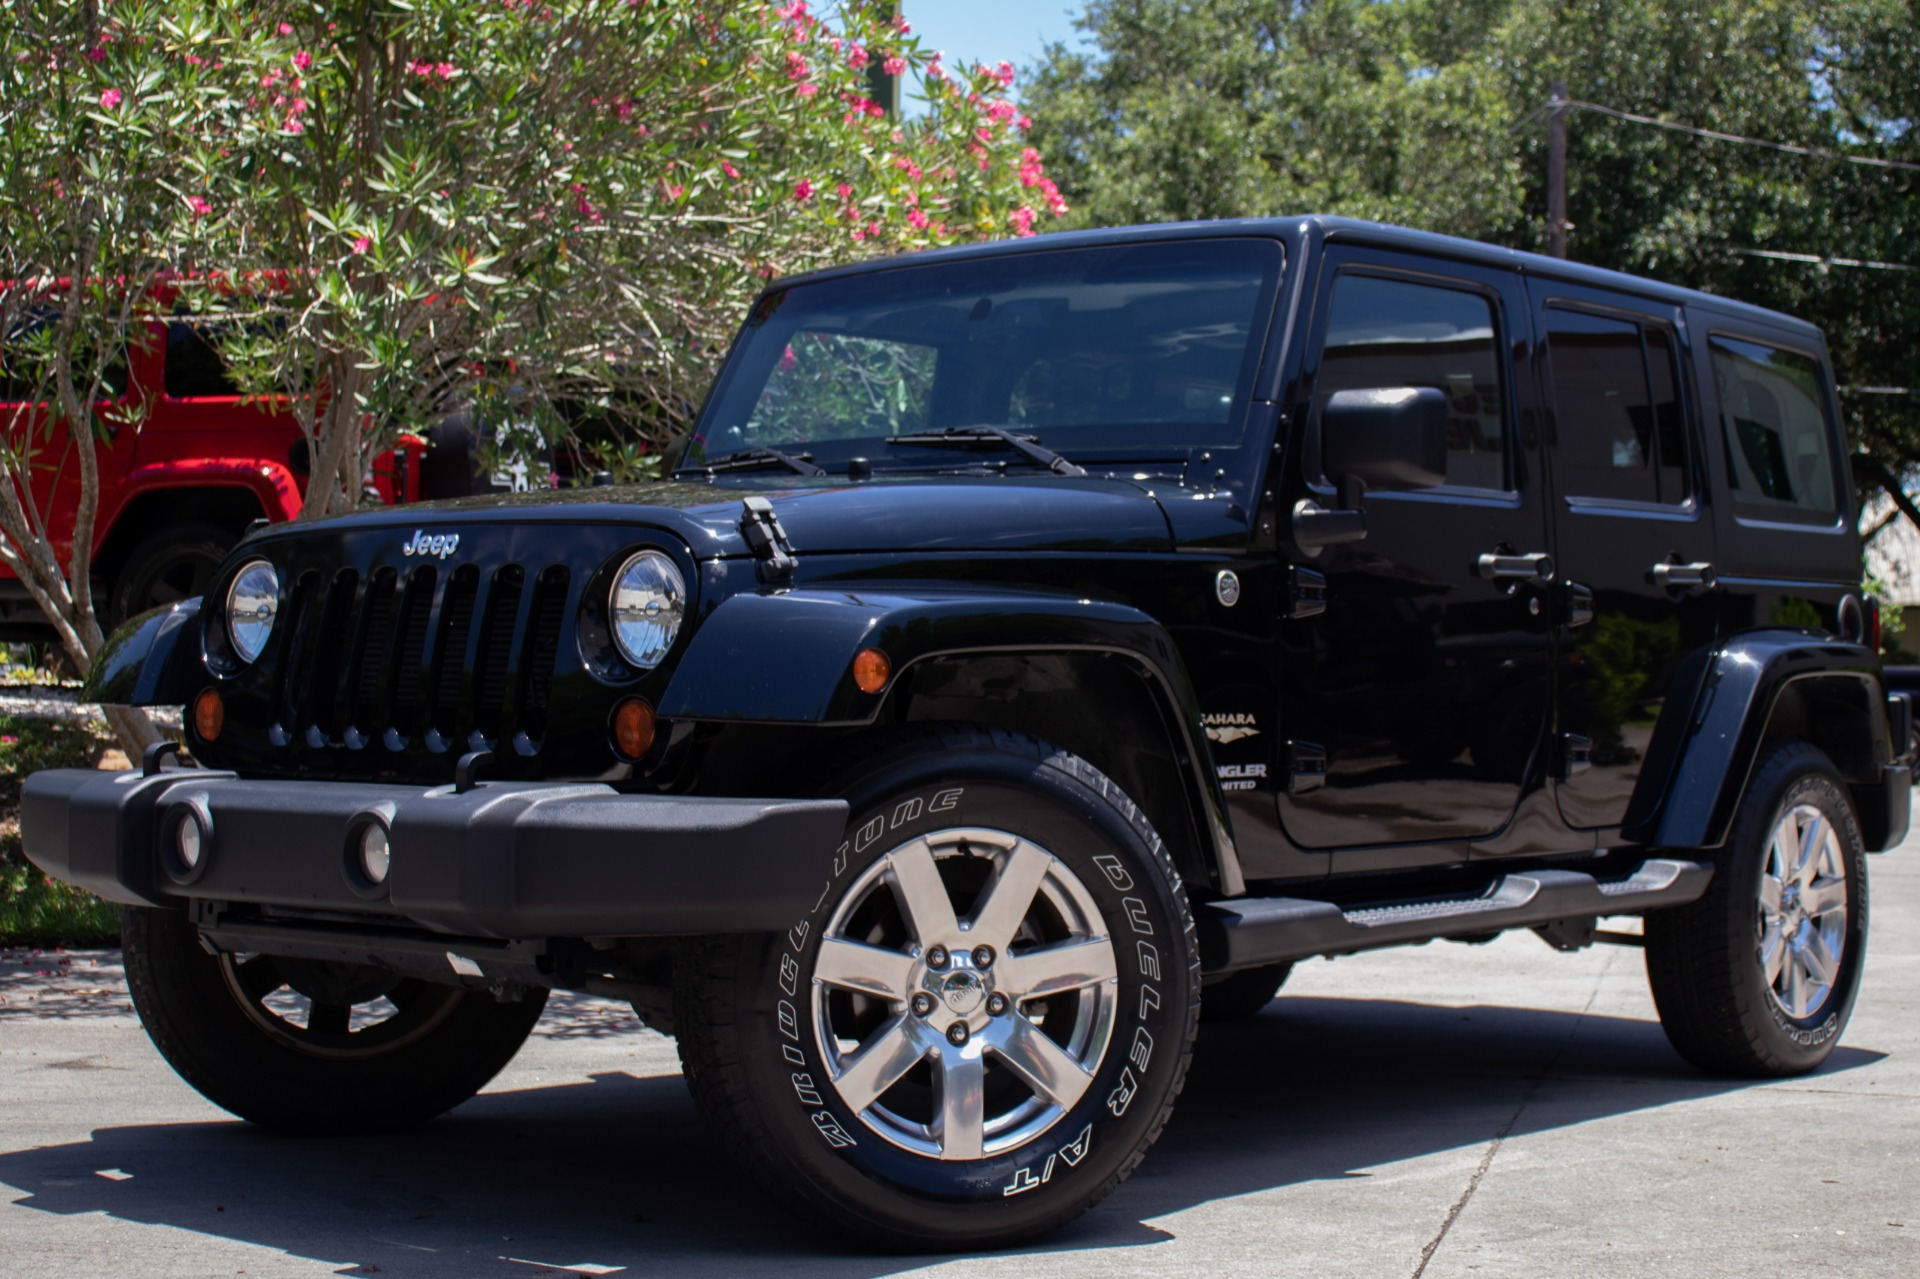 Used 2013 Jeep Wrangler Unlimited Sahara For Sale ($26,995 ...